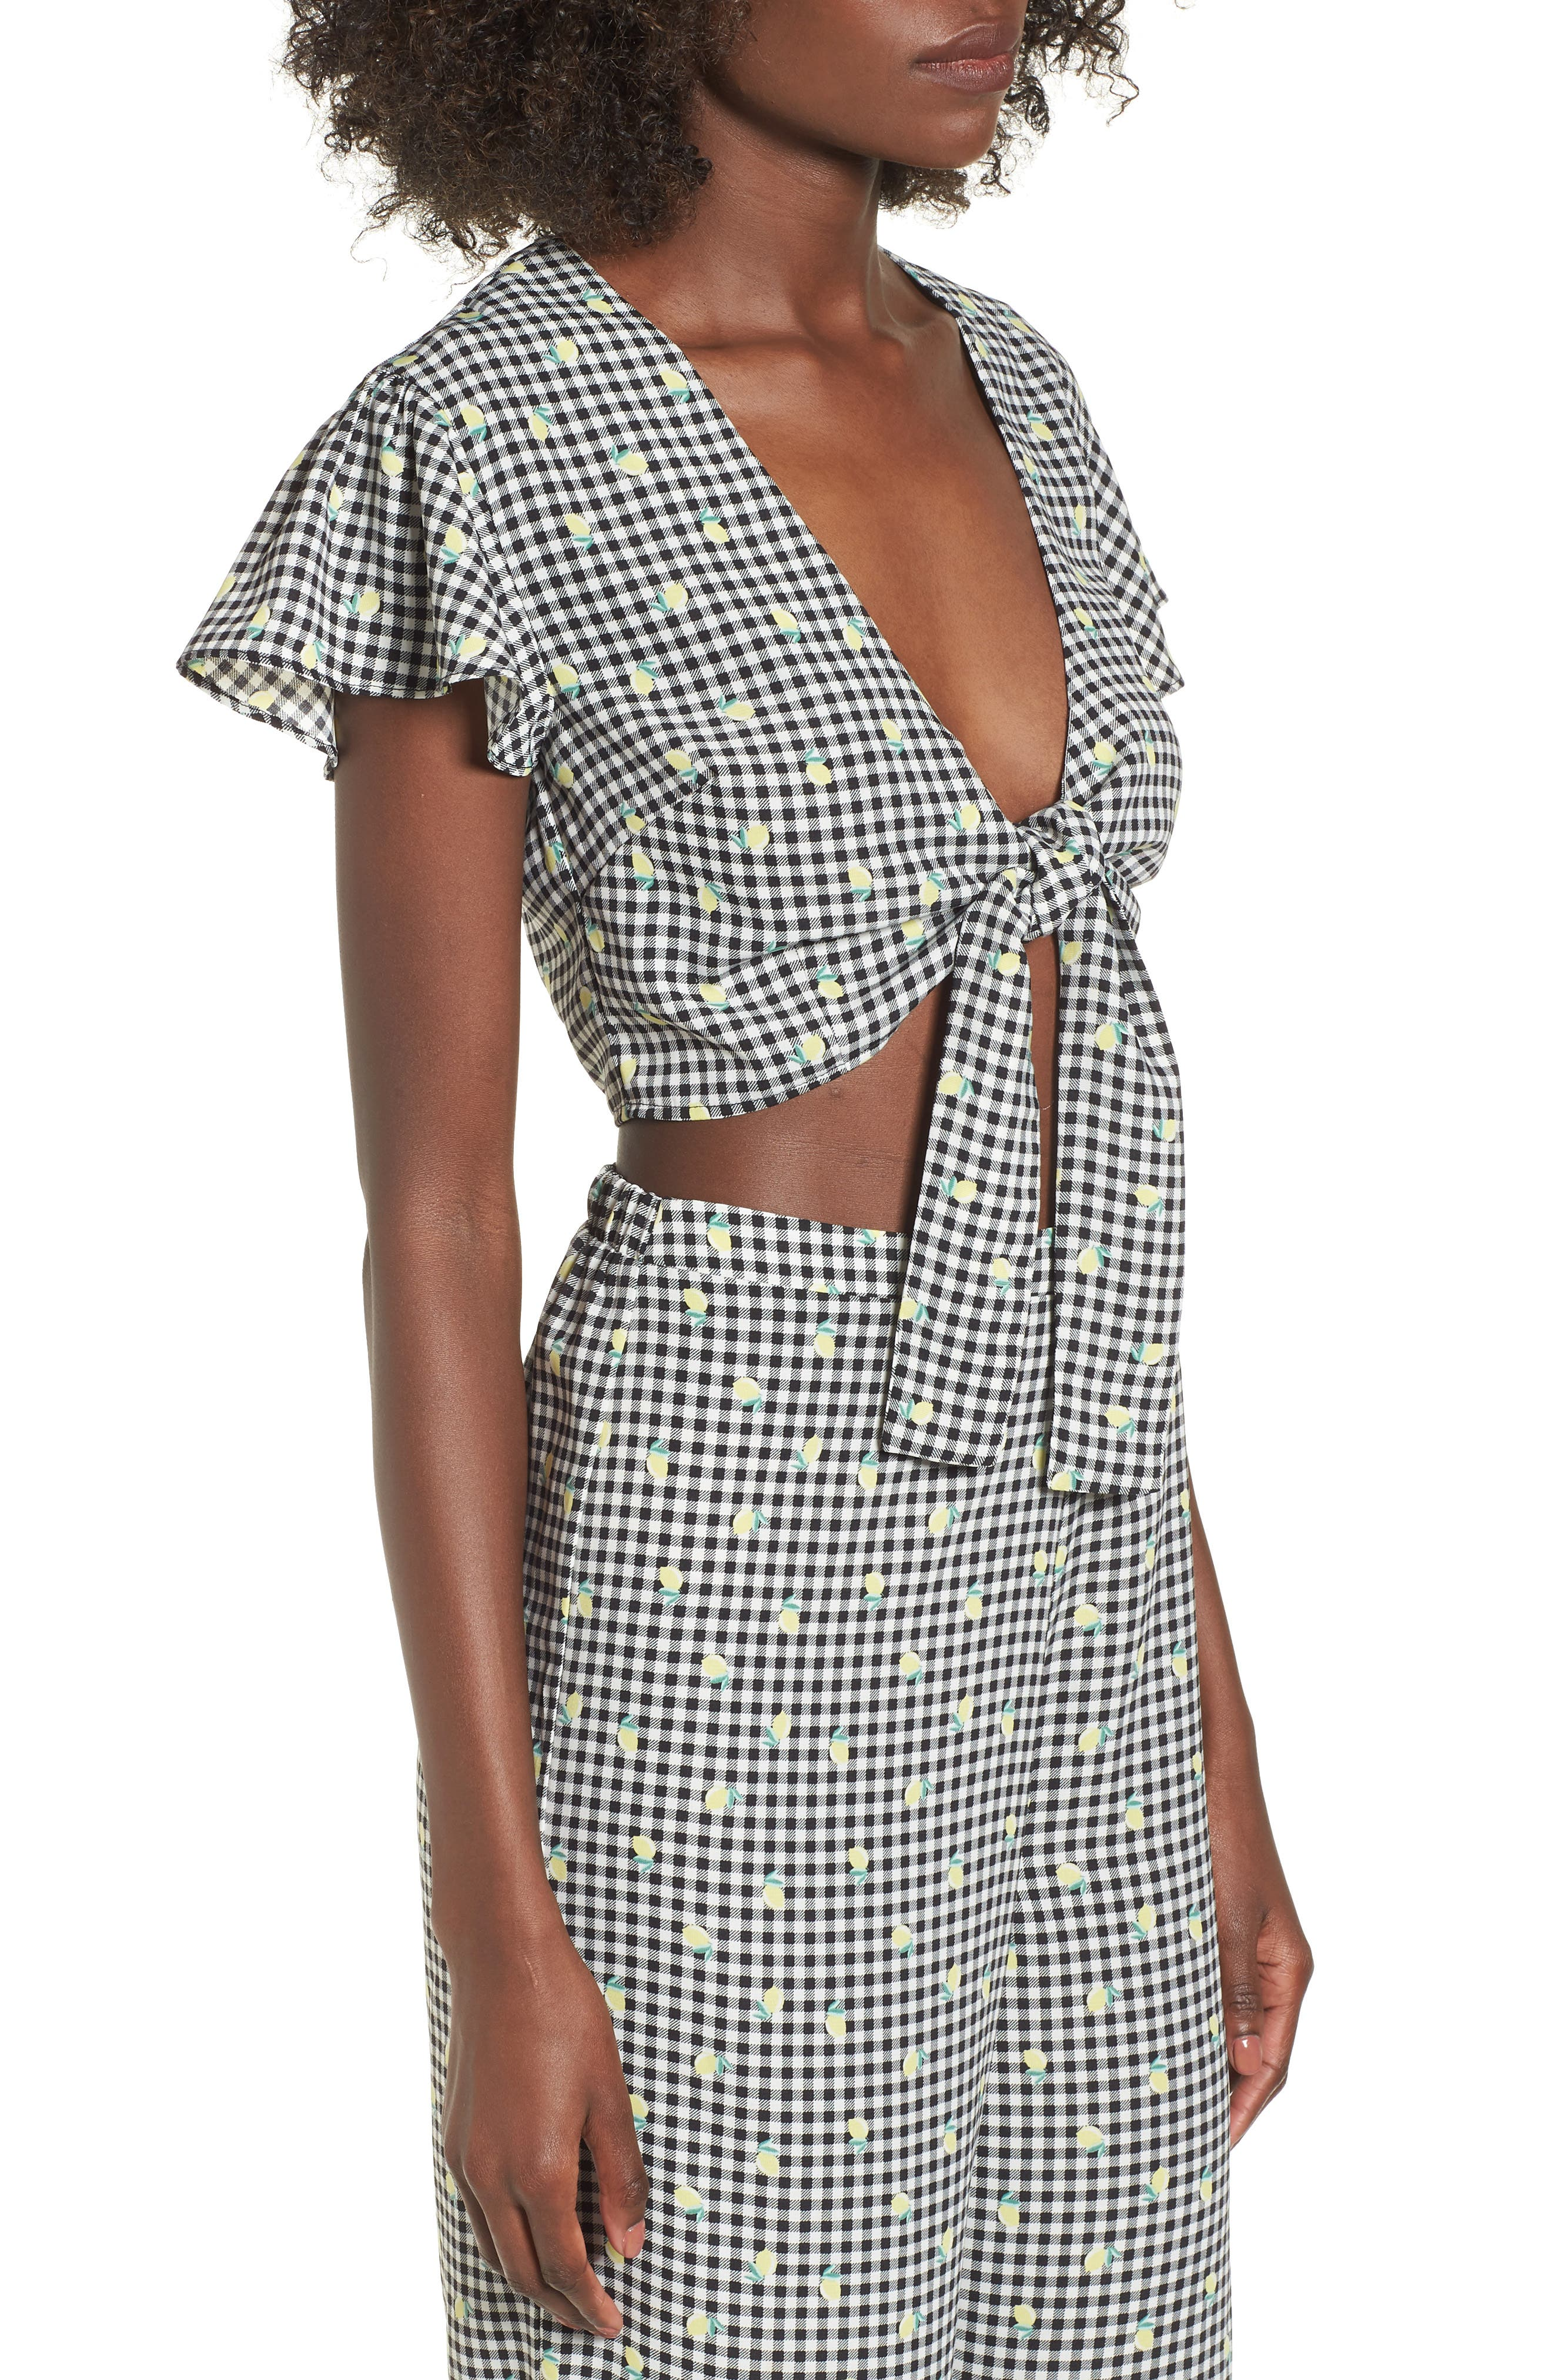 Gingham Tie Front Crop Top,                             Alternate thumbnail 4, color,                             Gingham Lemon Print